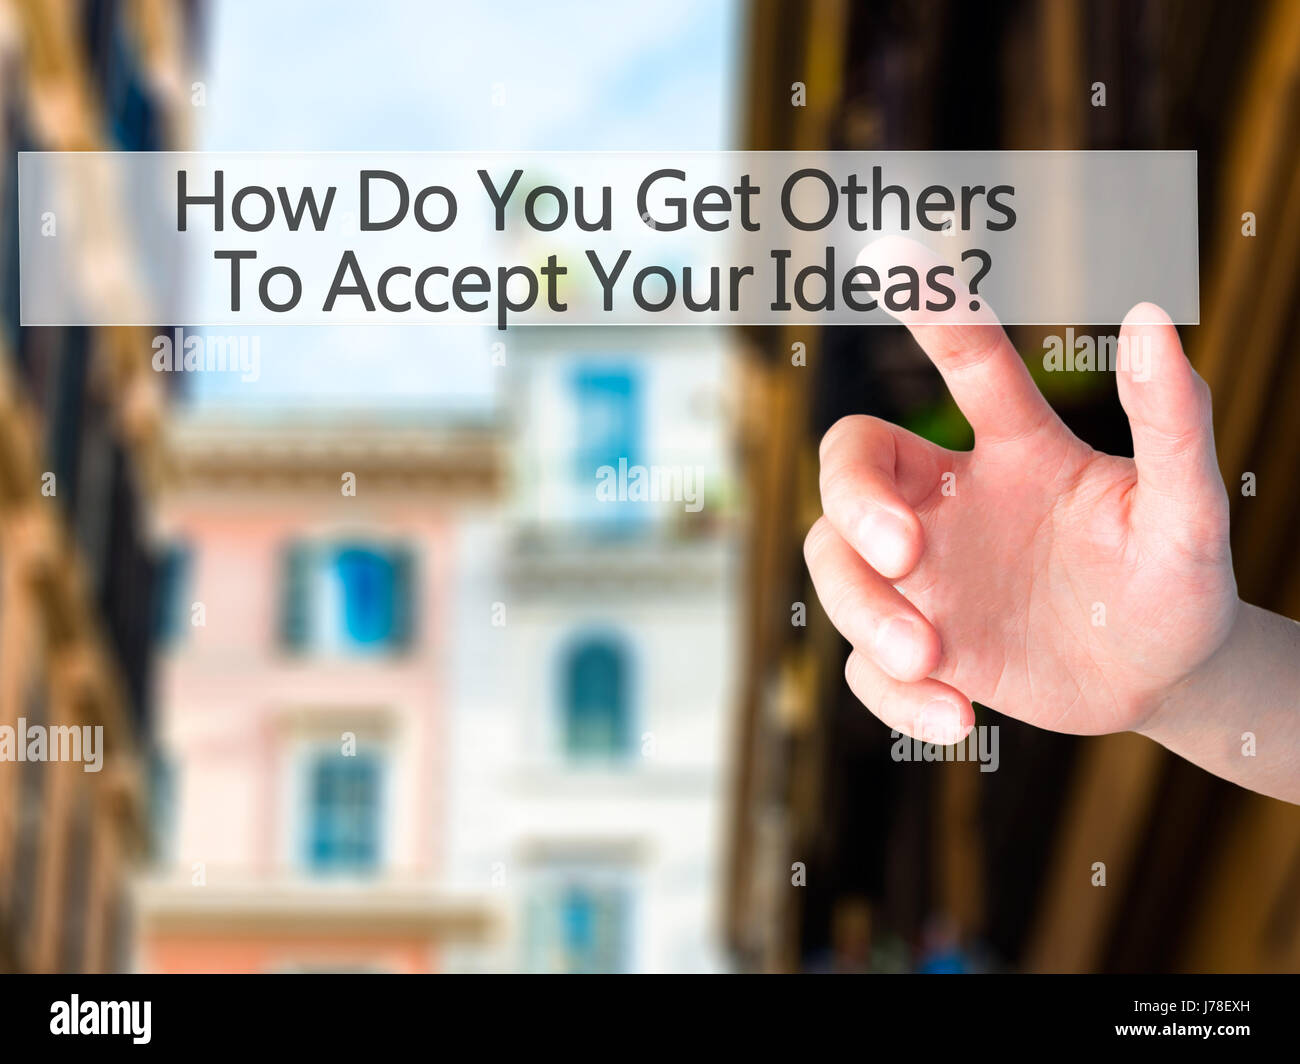 How Do You Get Others To Accept Your Ideas - Hand pressing a button on blurred background concept . Business, technology, - Stock Image